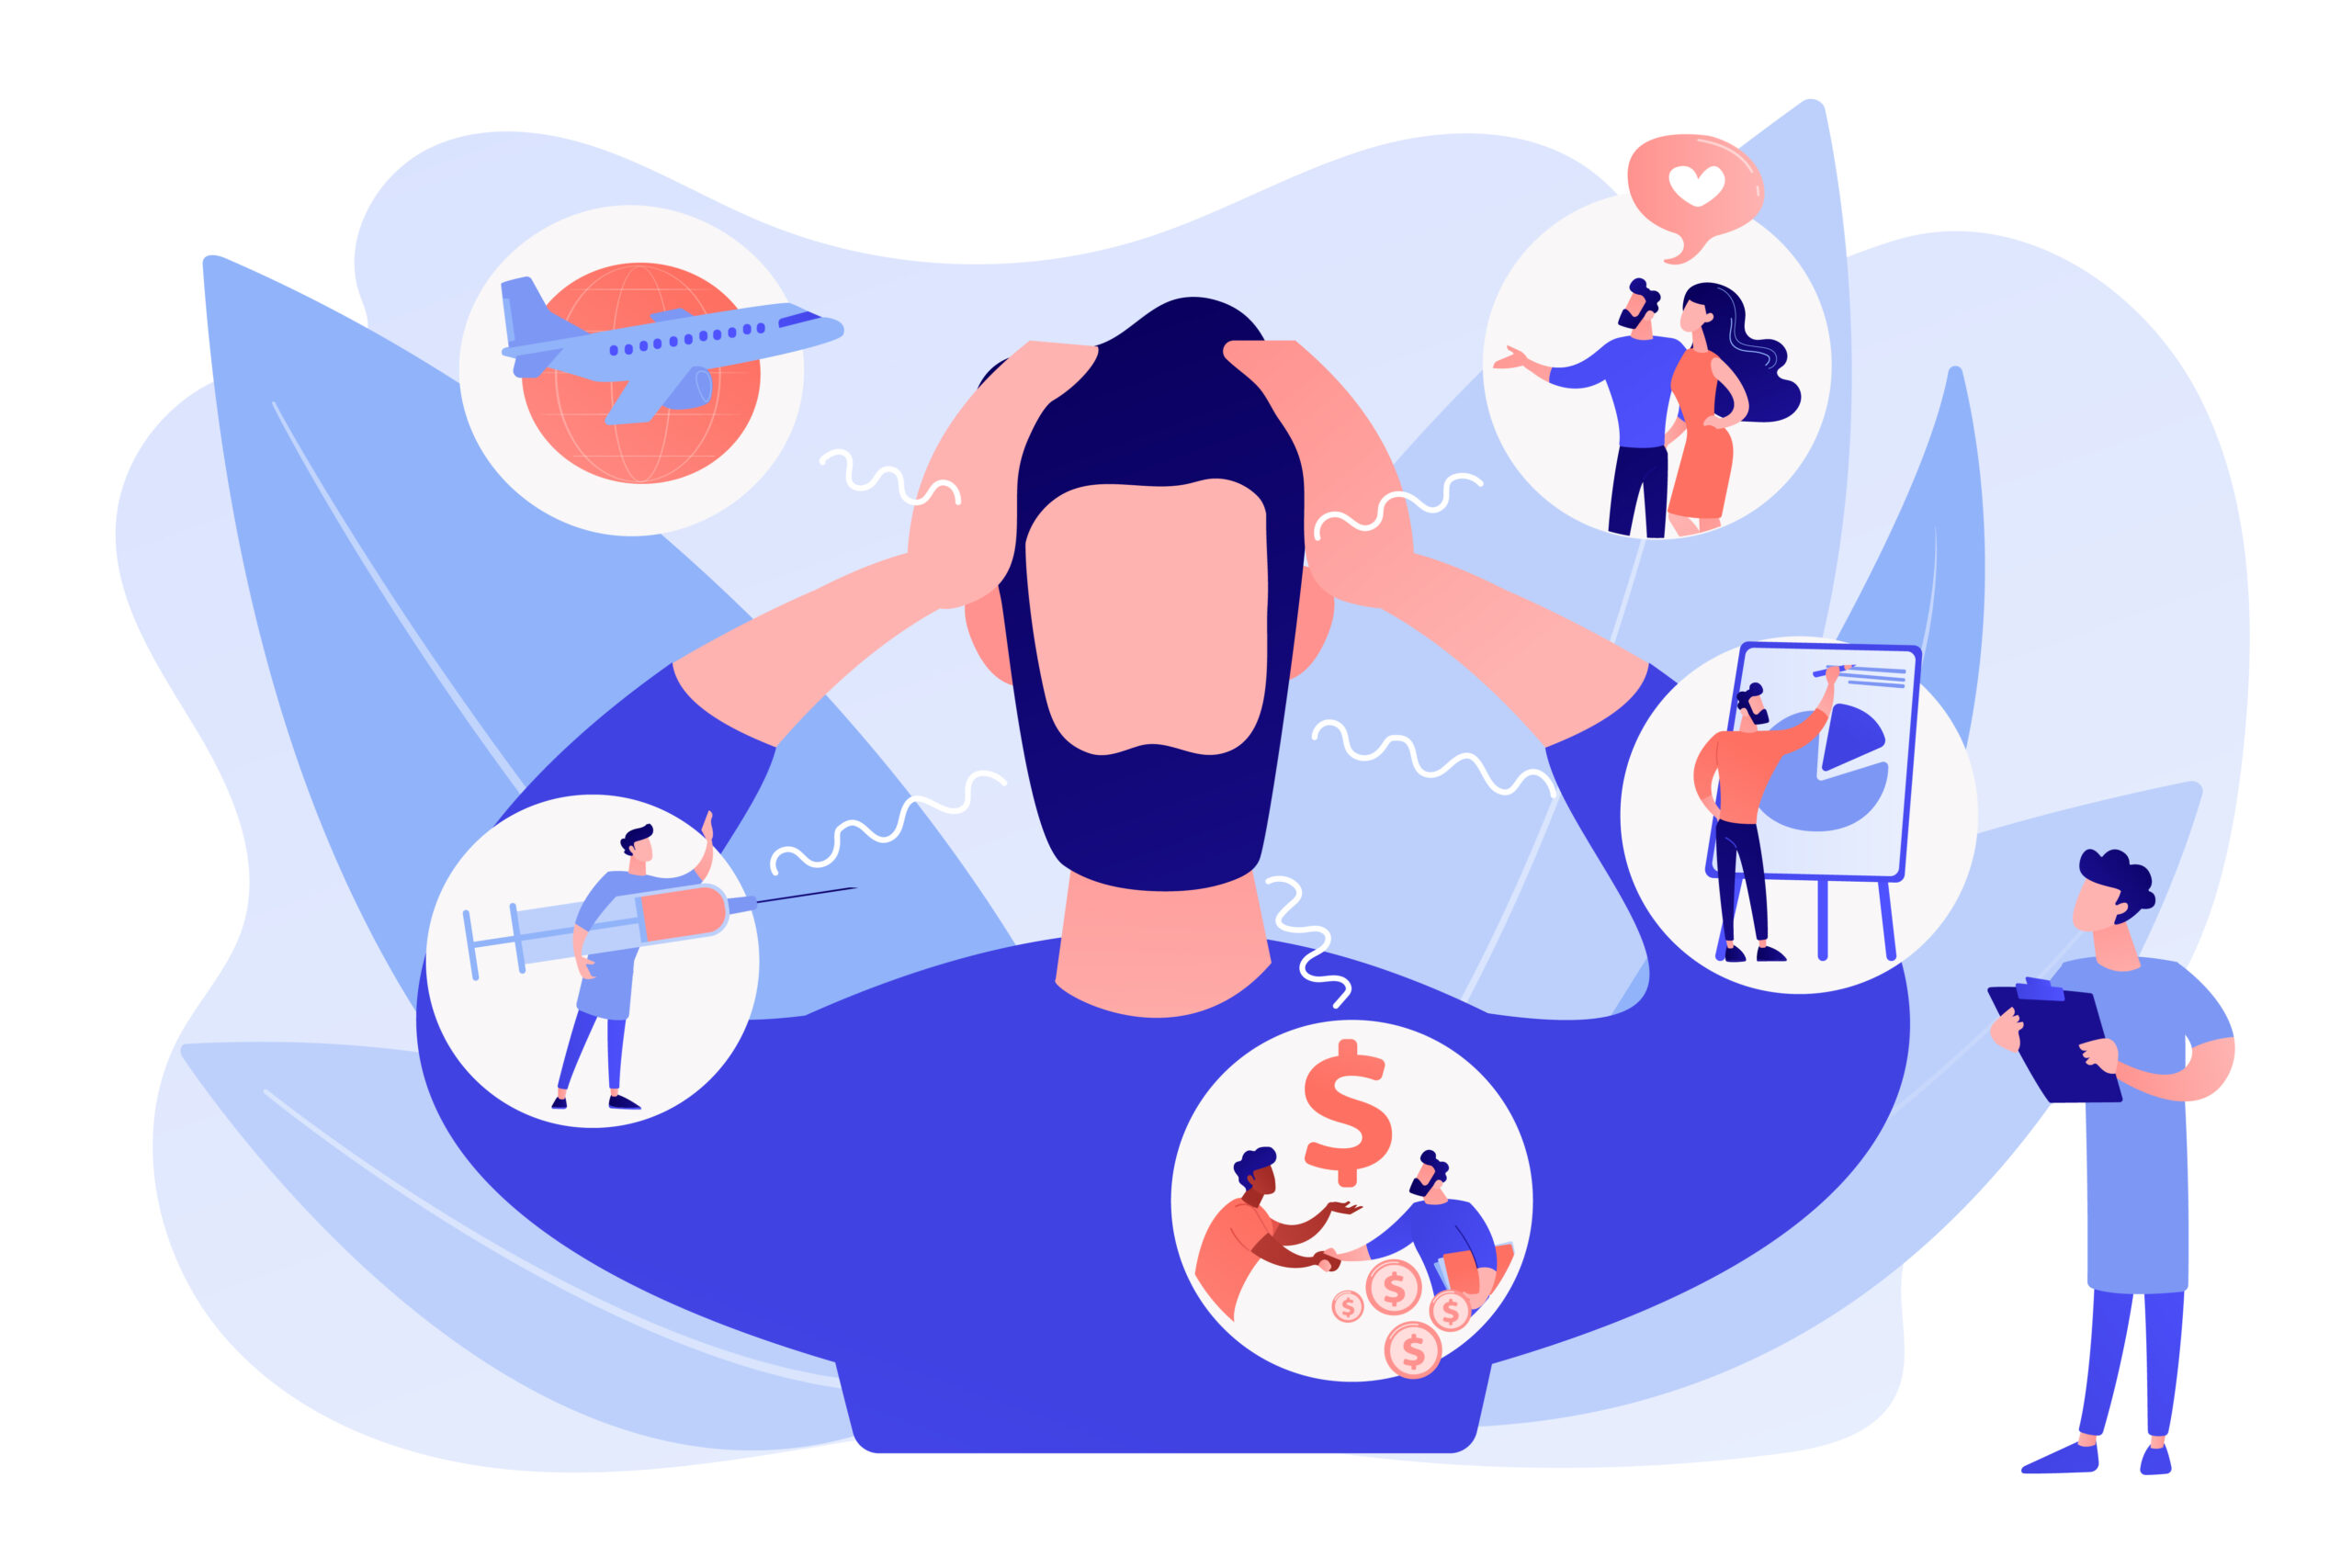 Introversion, agoraphobia, public spaces phobia. Mental illness, stress. Social anxiety disorder, anxiety screening test, anxiety attack concept. Pinkish coral bluevector isolated illustration